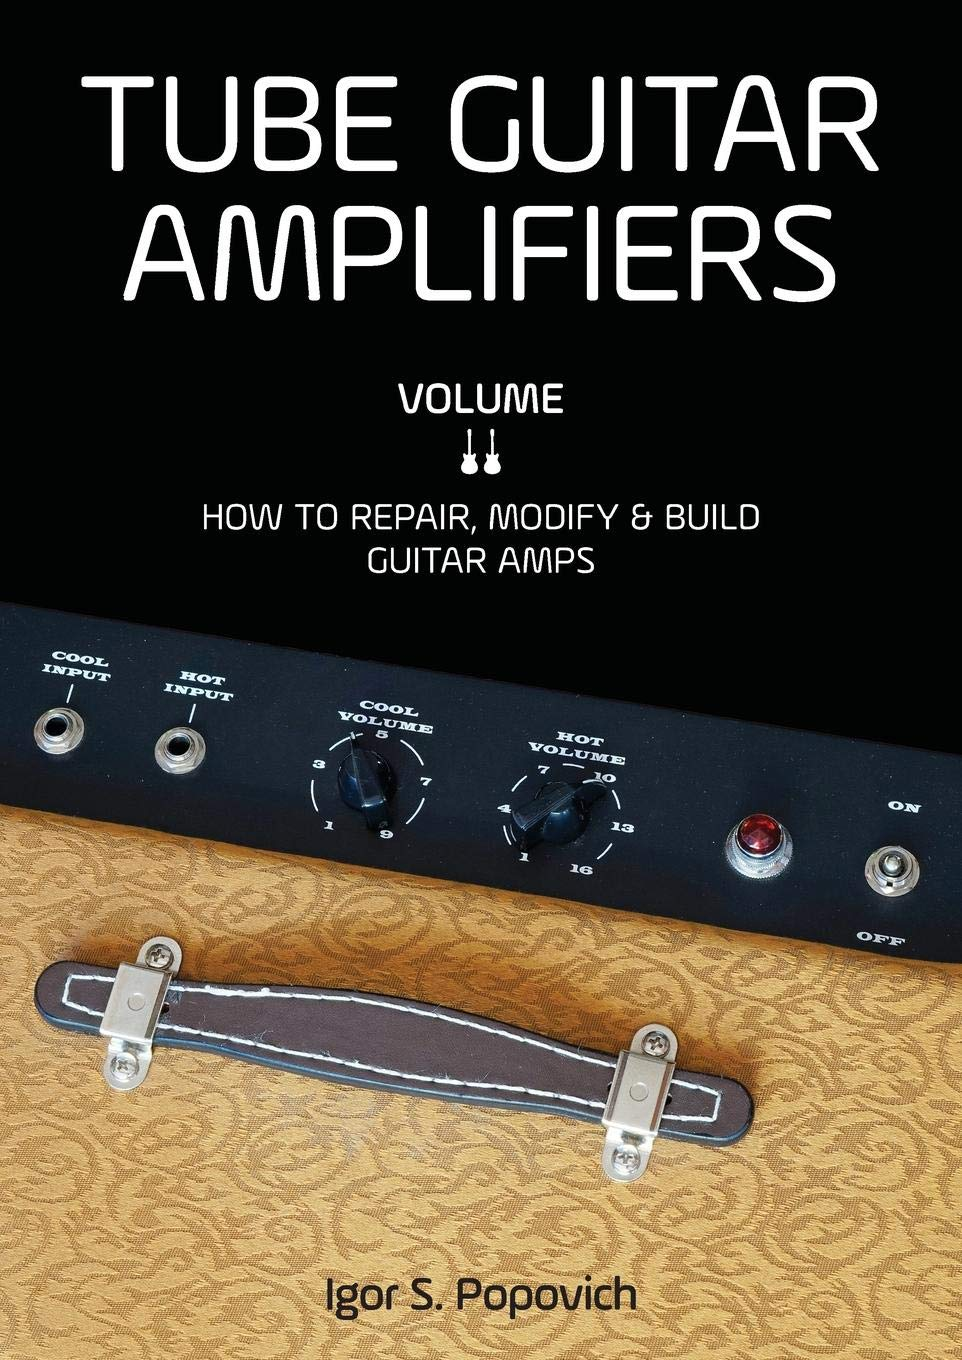 Tube Guitar Amplifiers Volume 2: How to Repair, Modify & Build Guitar Amps by Career Professionals